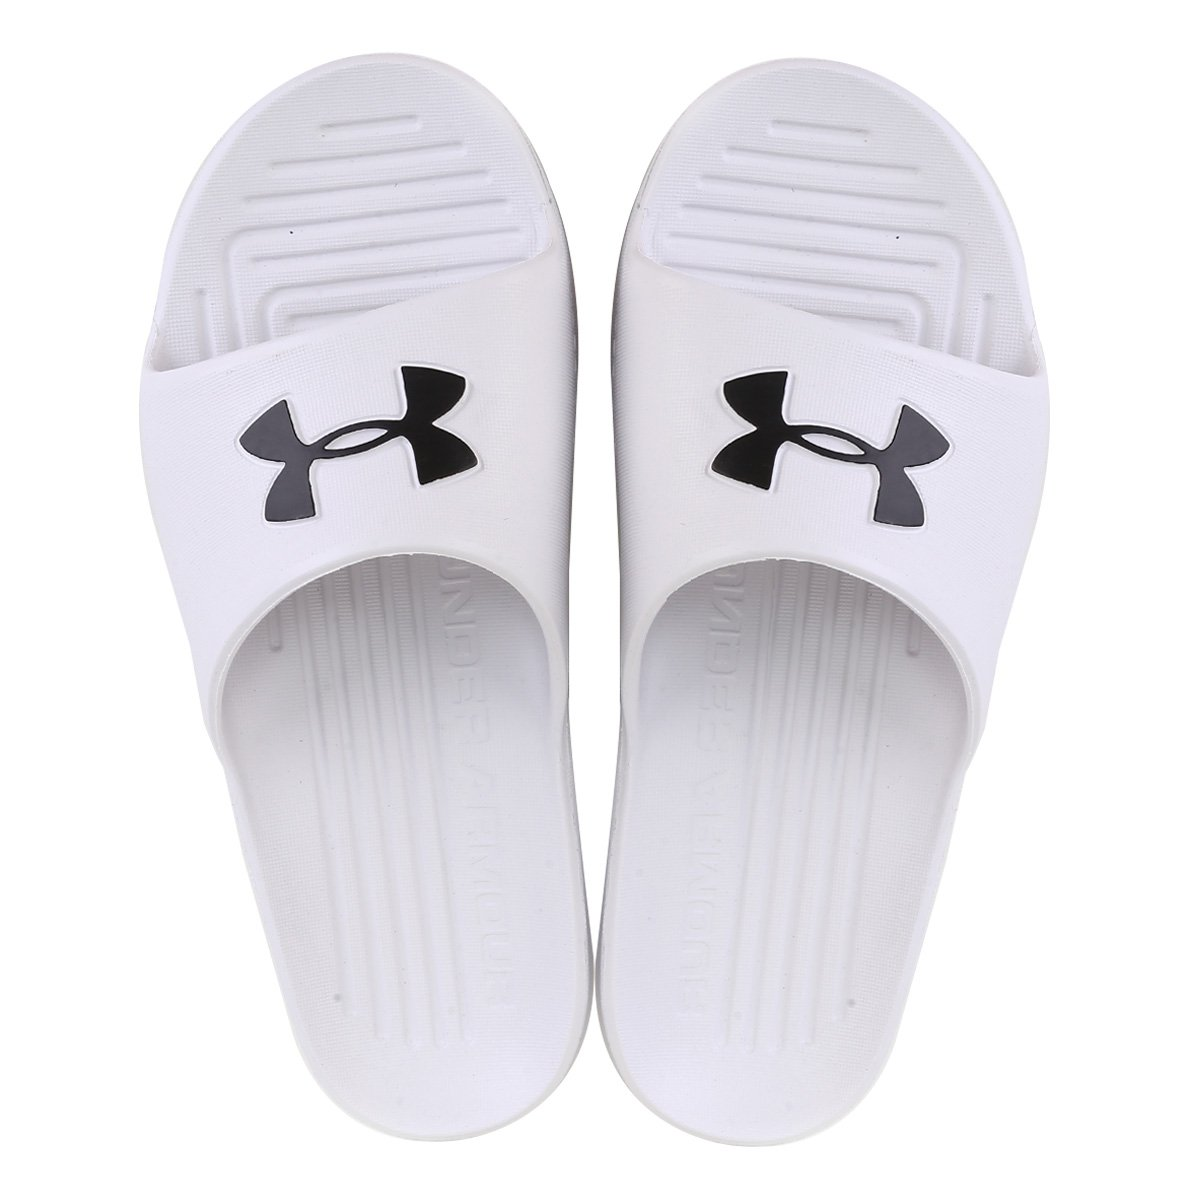 Chinelo Under Armour Core - Tam: 37/38